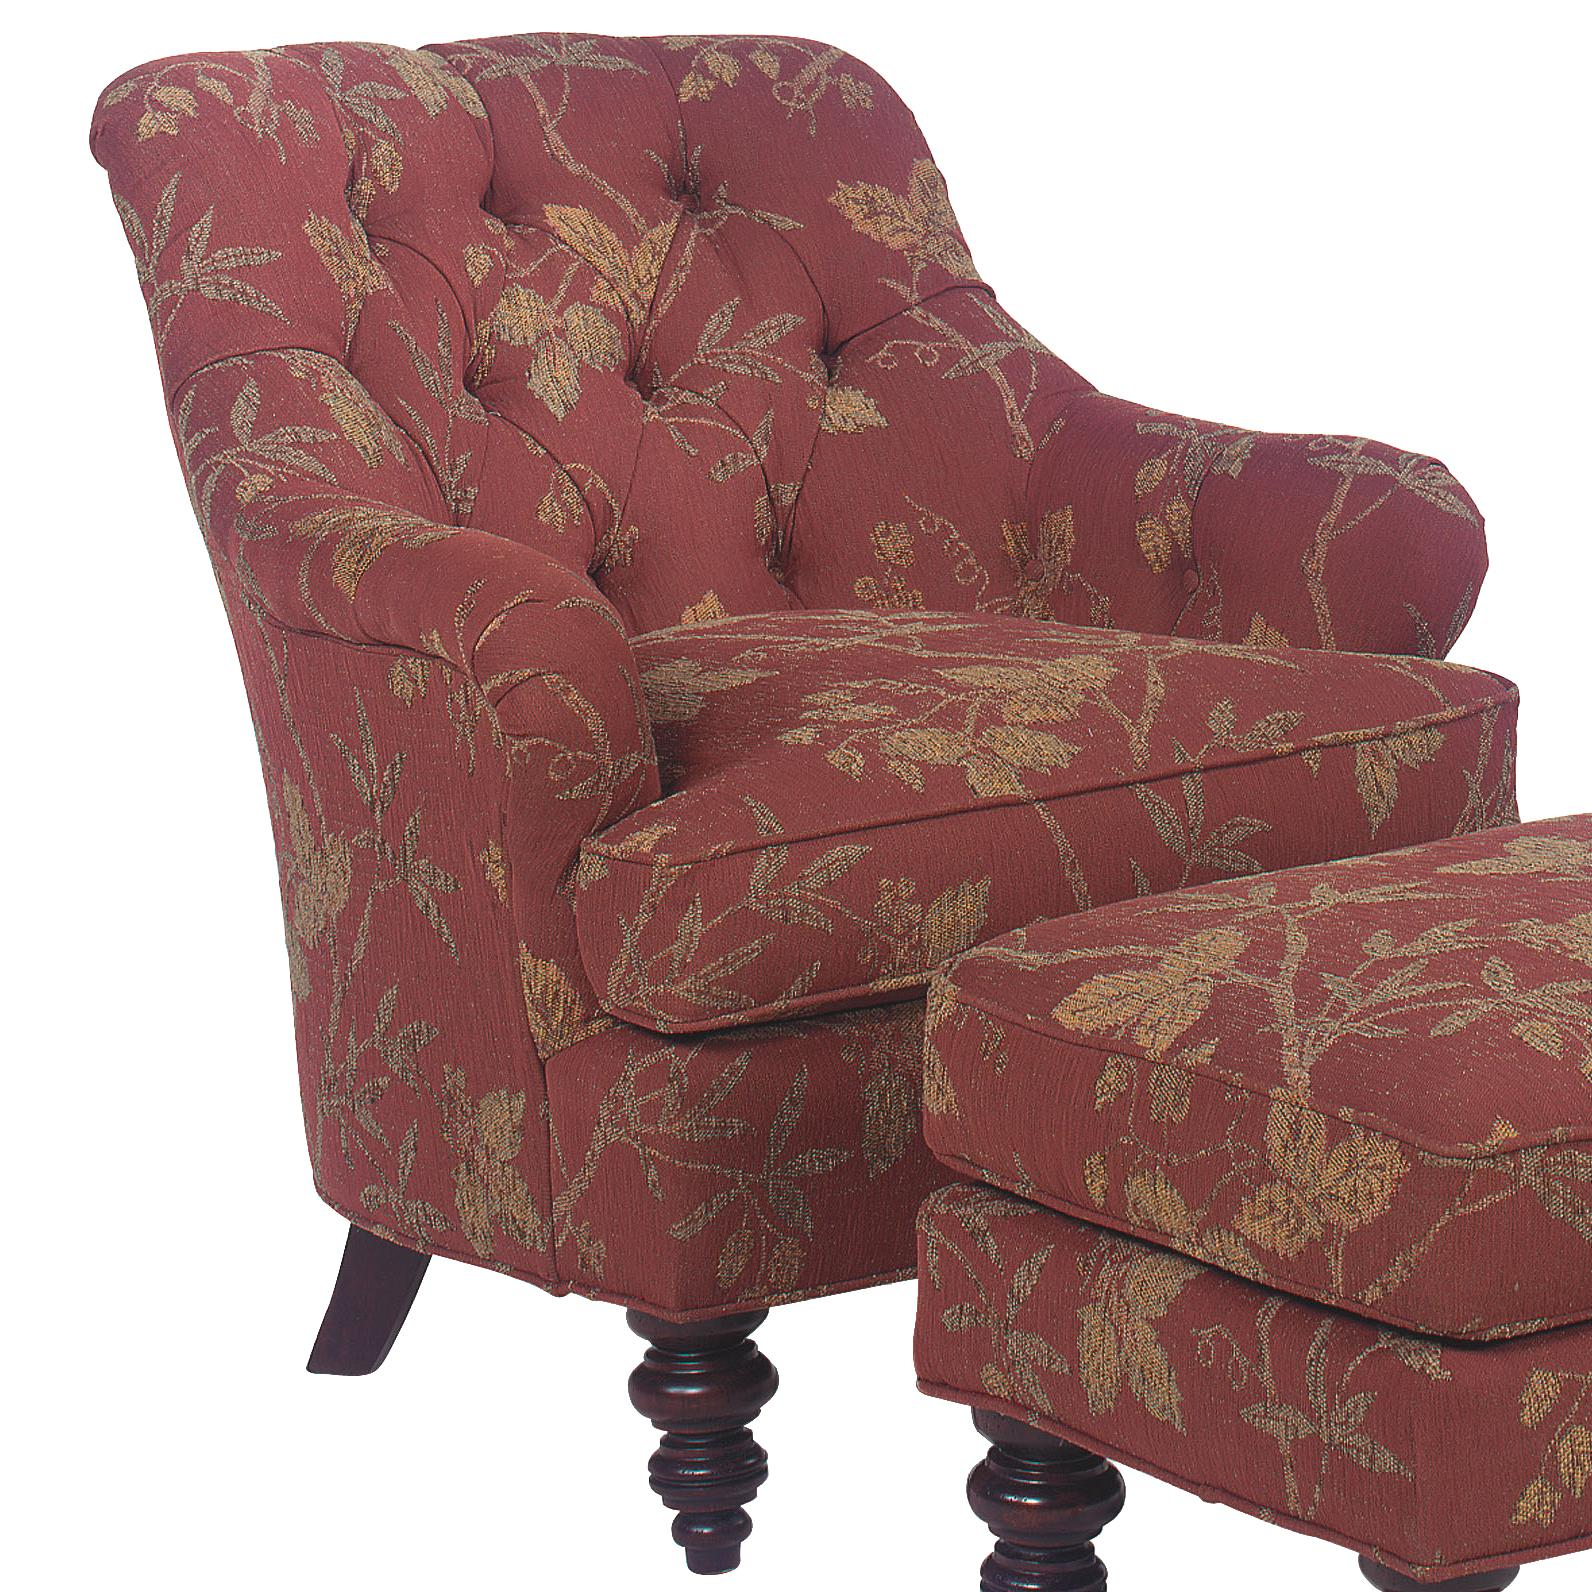 Fairfield 1141 Lounge Chair - Item Number: 1141-01